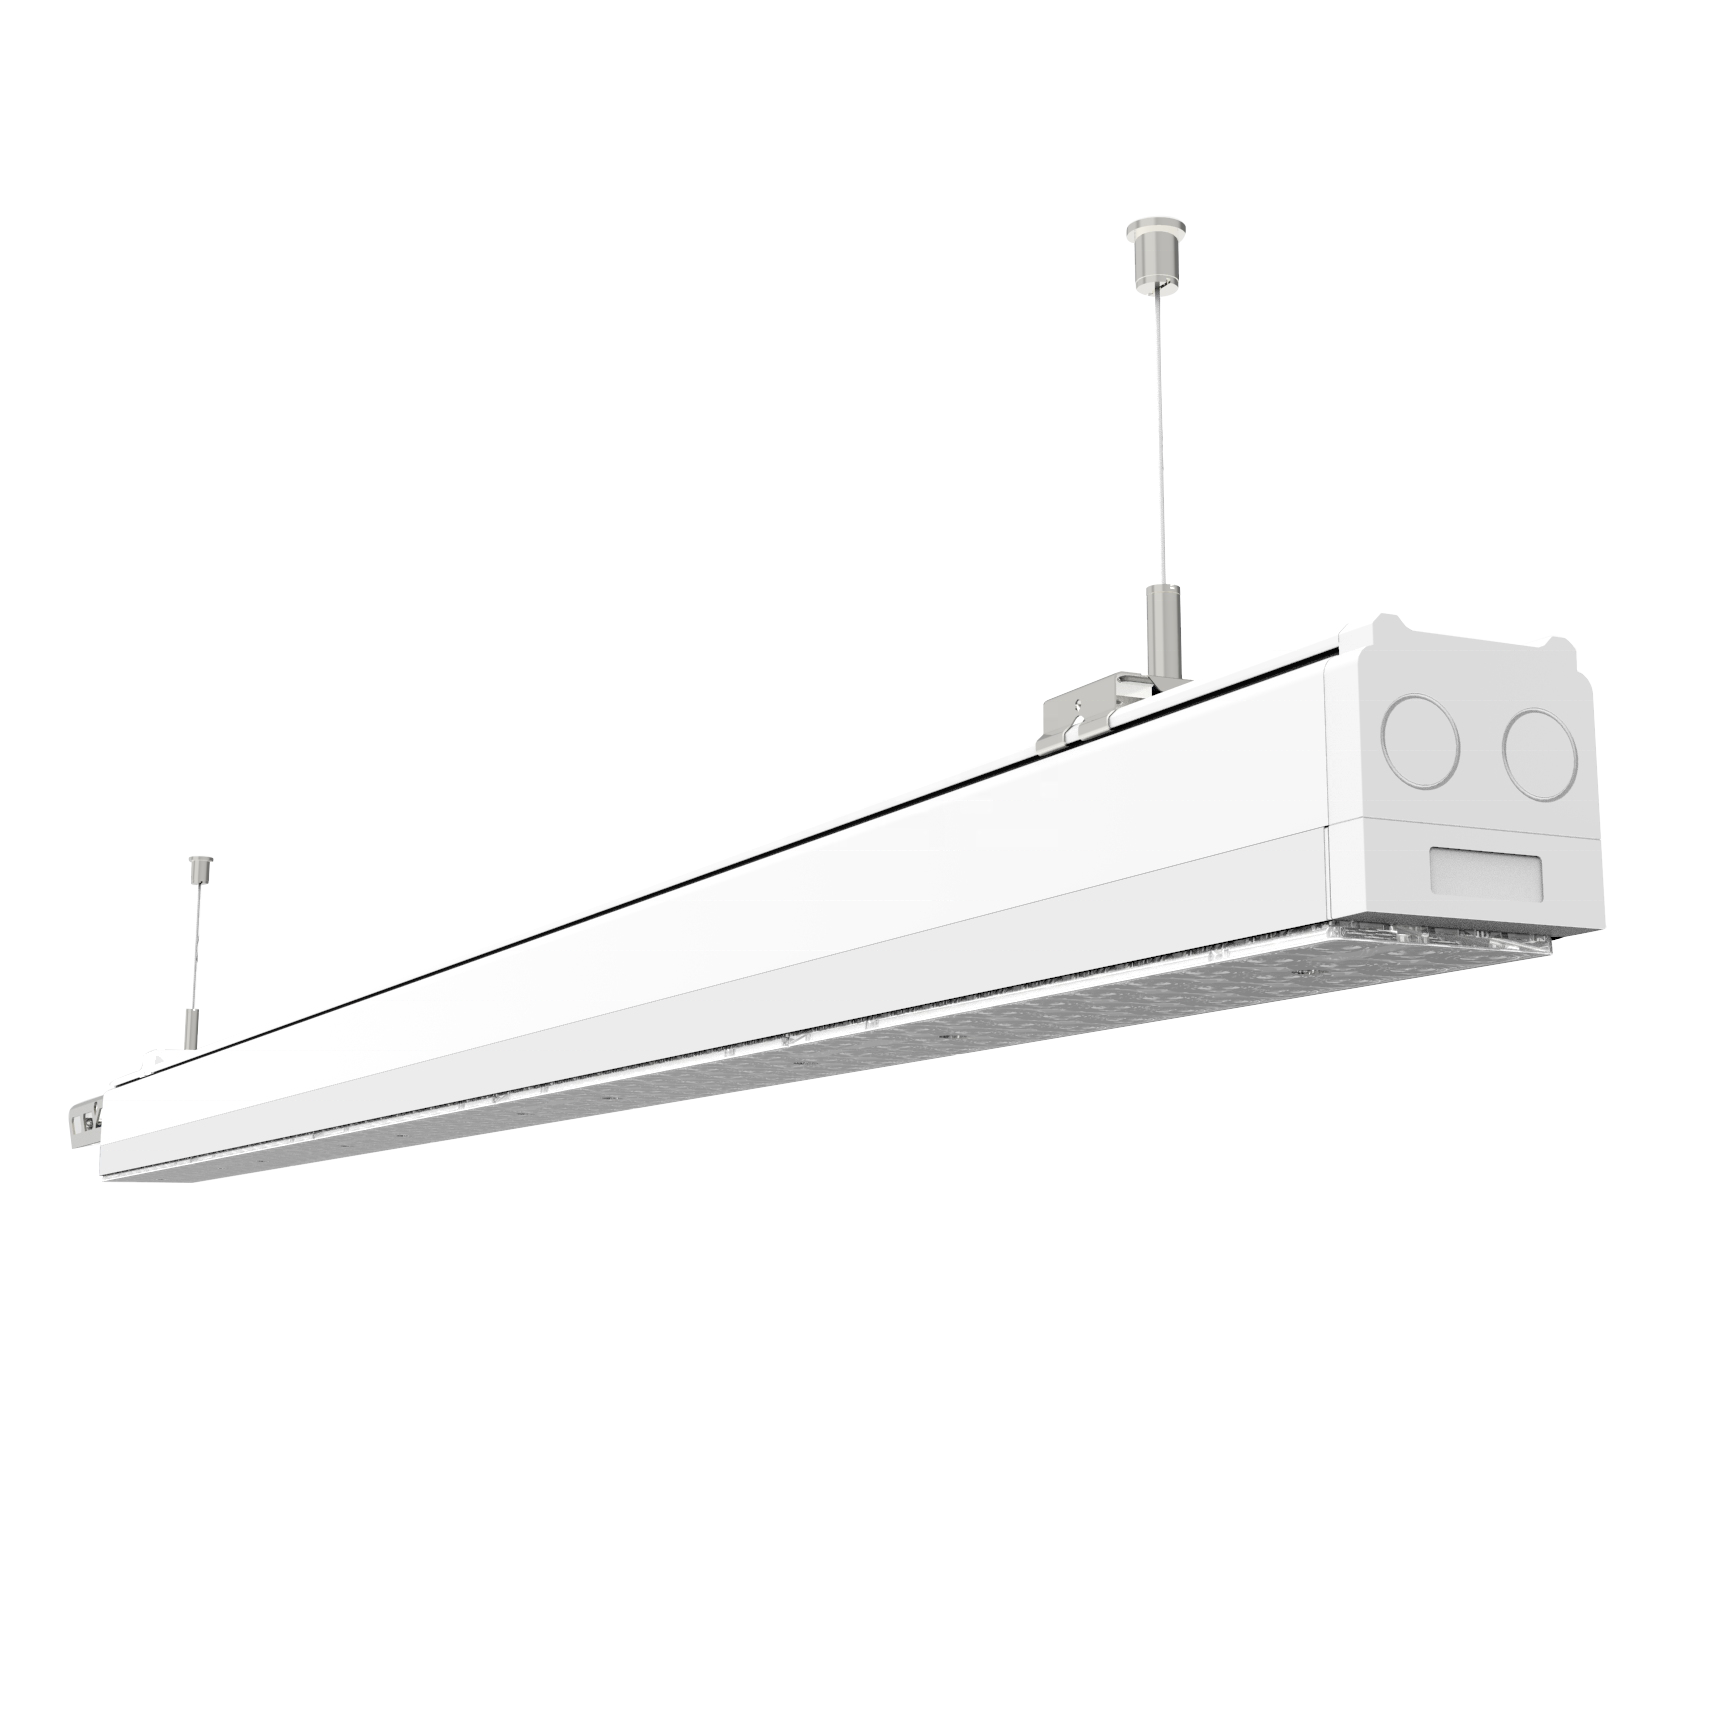 160lm/<strong>w</strong> newest modular lighting system Continuous Led linear trunking system ENEC CB CE ROHS